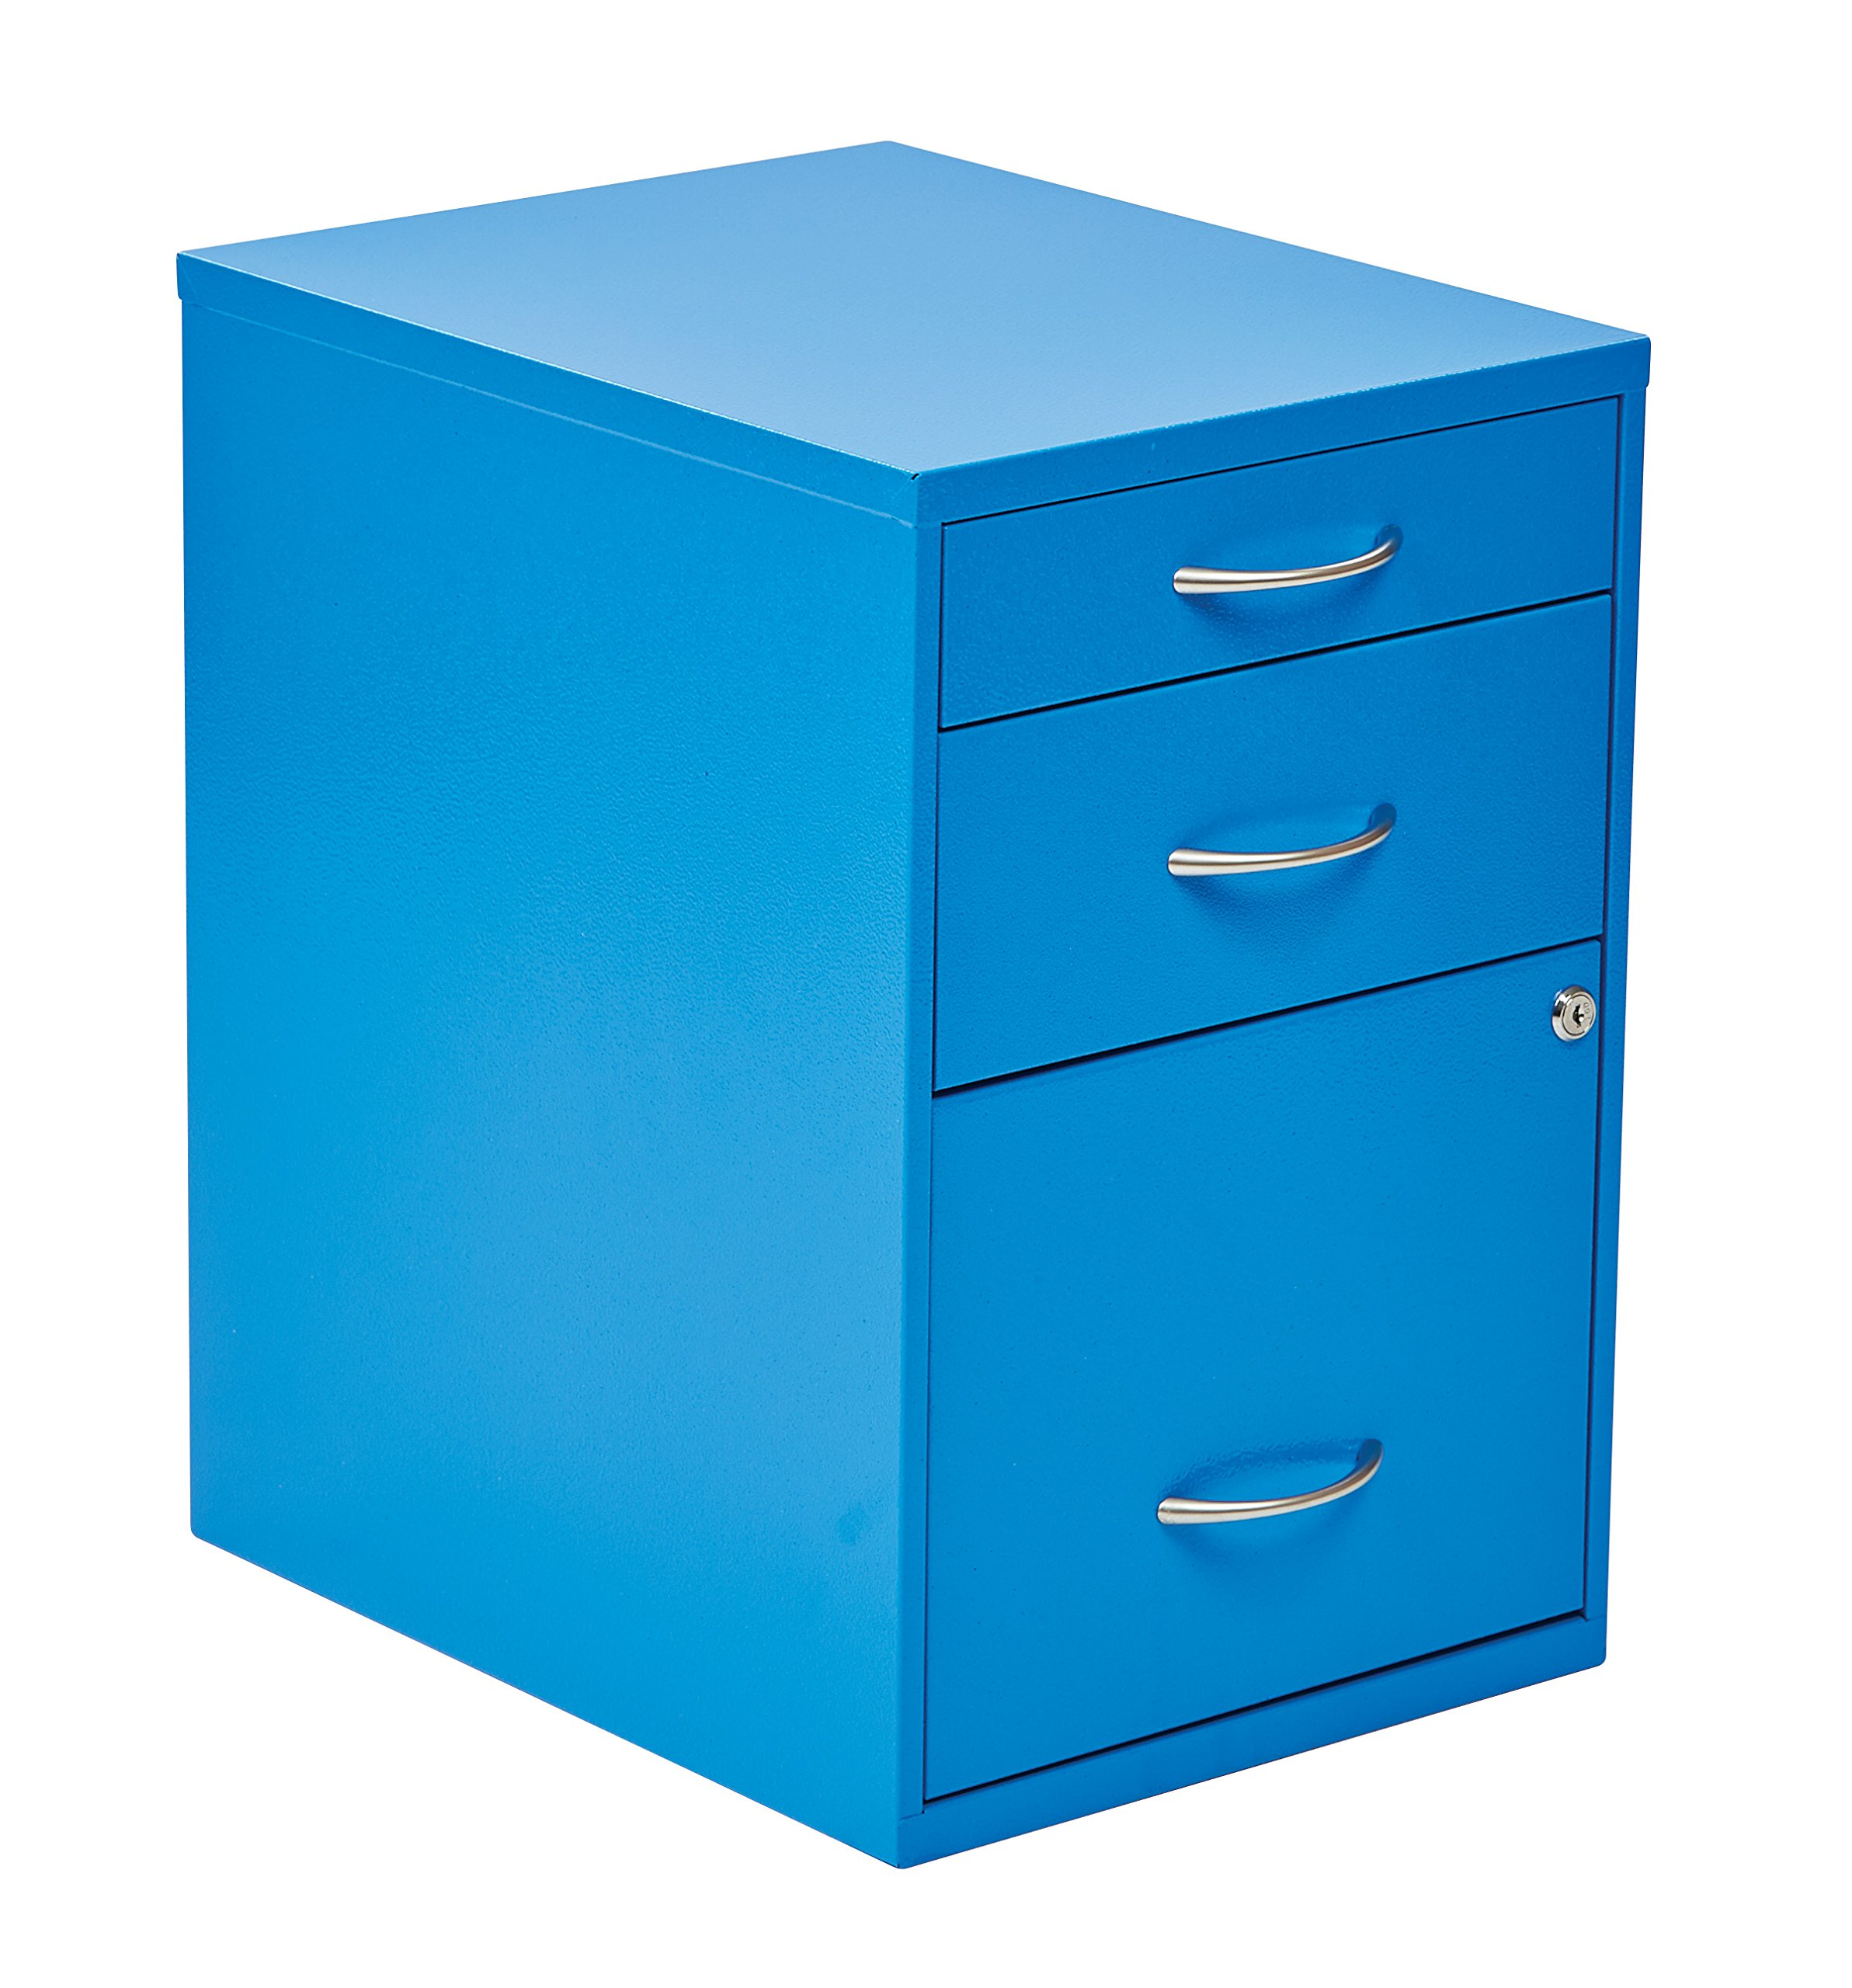 OSP Designs HPBF7 Pencil, Box and Storage File Cabinet, 22-Inch, Blue